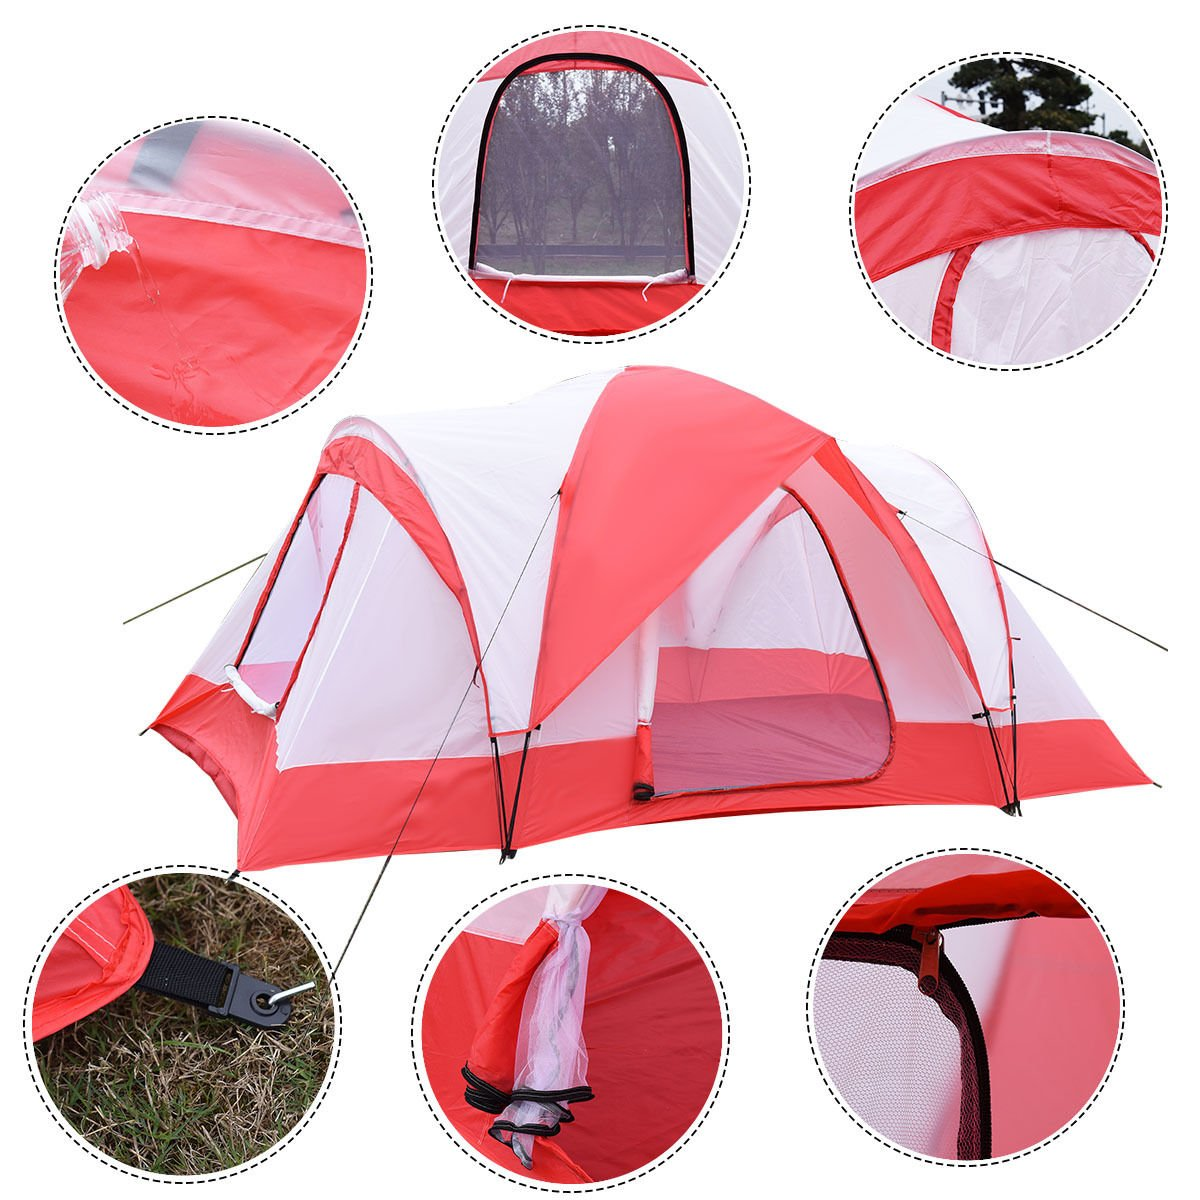 10 Person Outdoor Waterproof Hiking Camping Tent Double Layer with Zipper Closure Red & White for Backpack and Outdoor Activity by DTOFREE